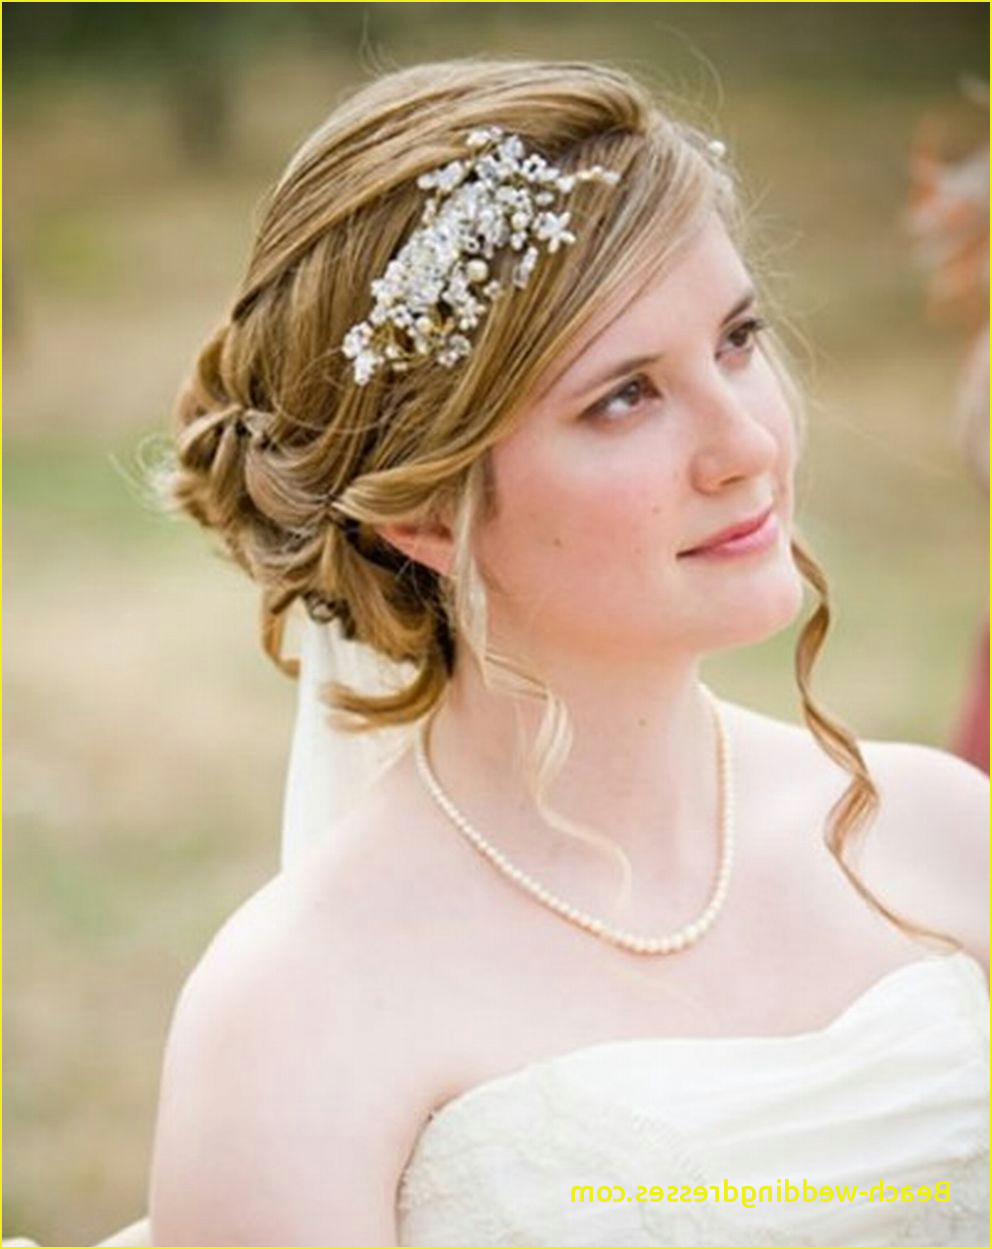 Best Of Wedding Hairstyles With Tiara For Medium Length Hair (View 4 of 20)